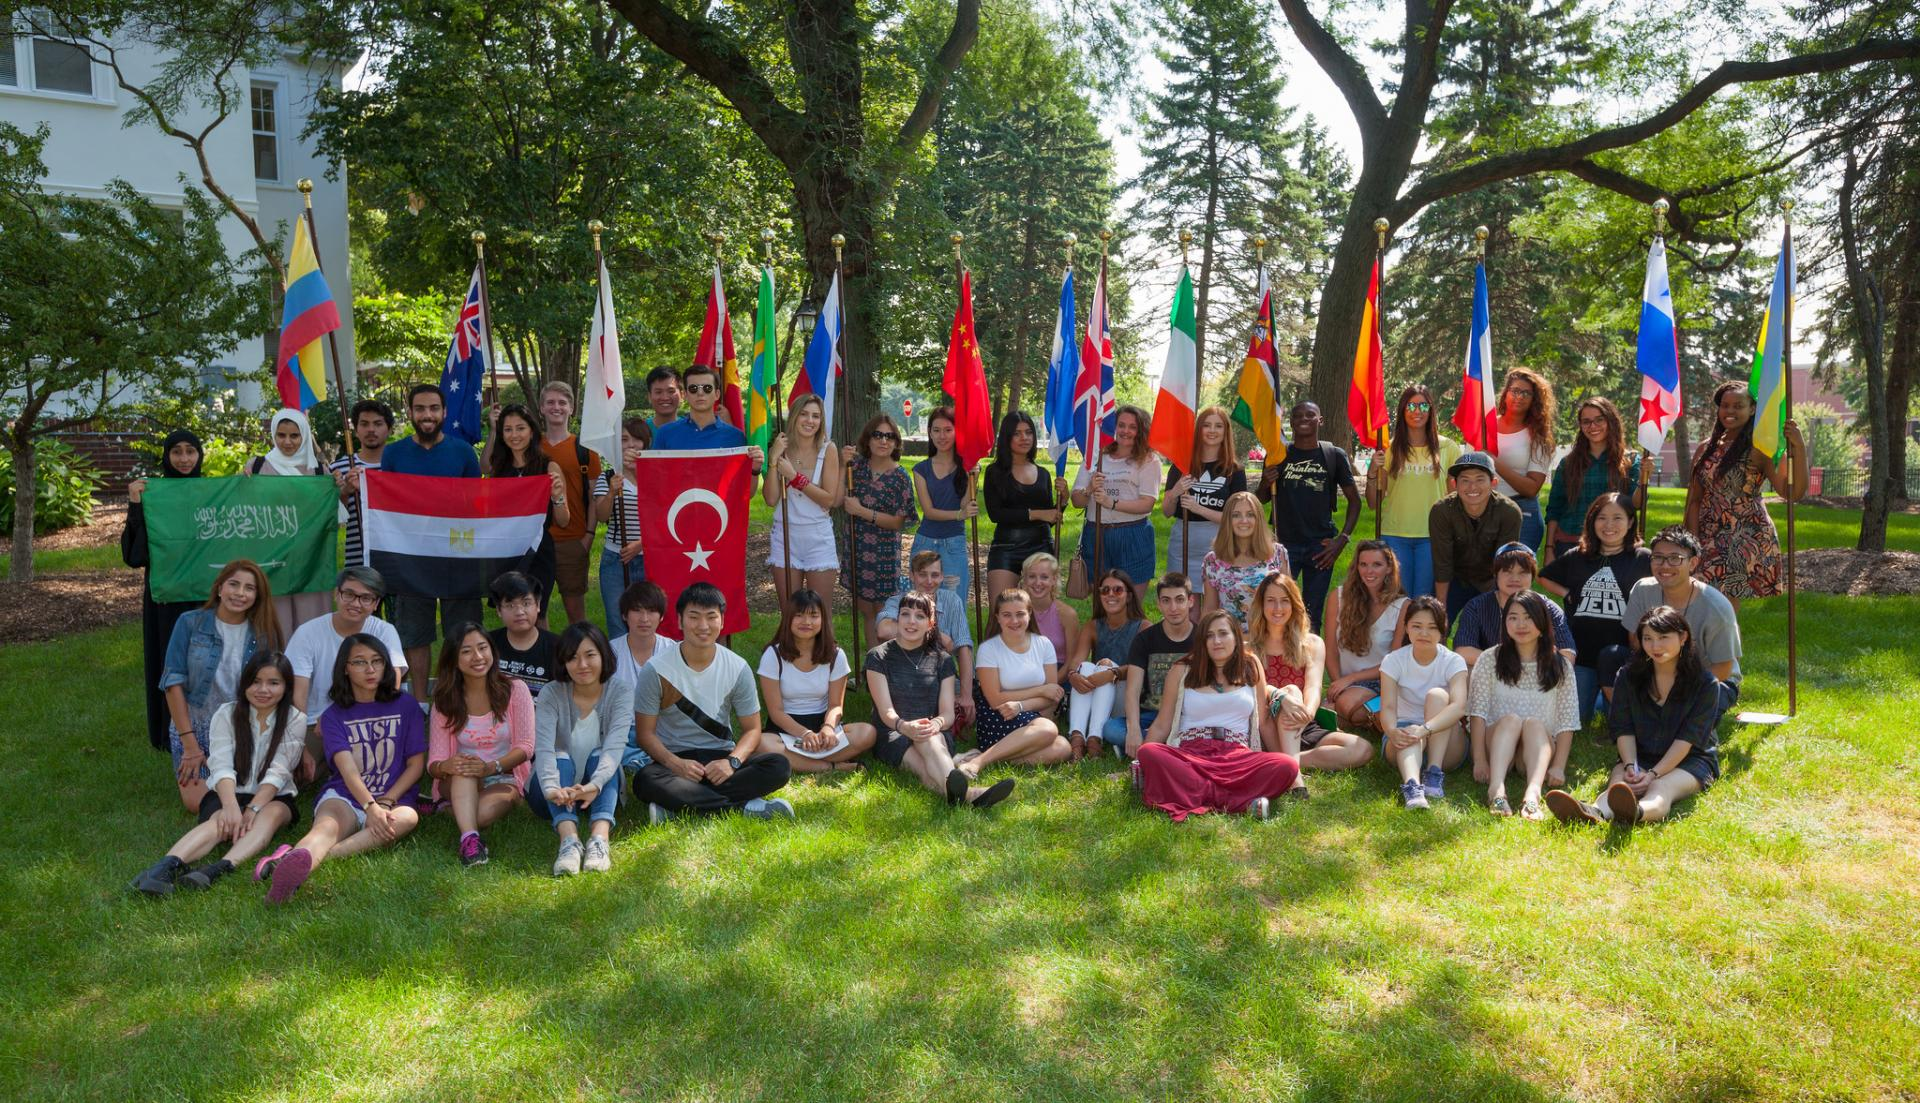 North Central to award #YouAreWelcomeHere Scholarship to international students